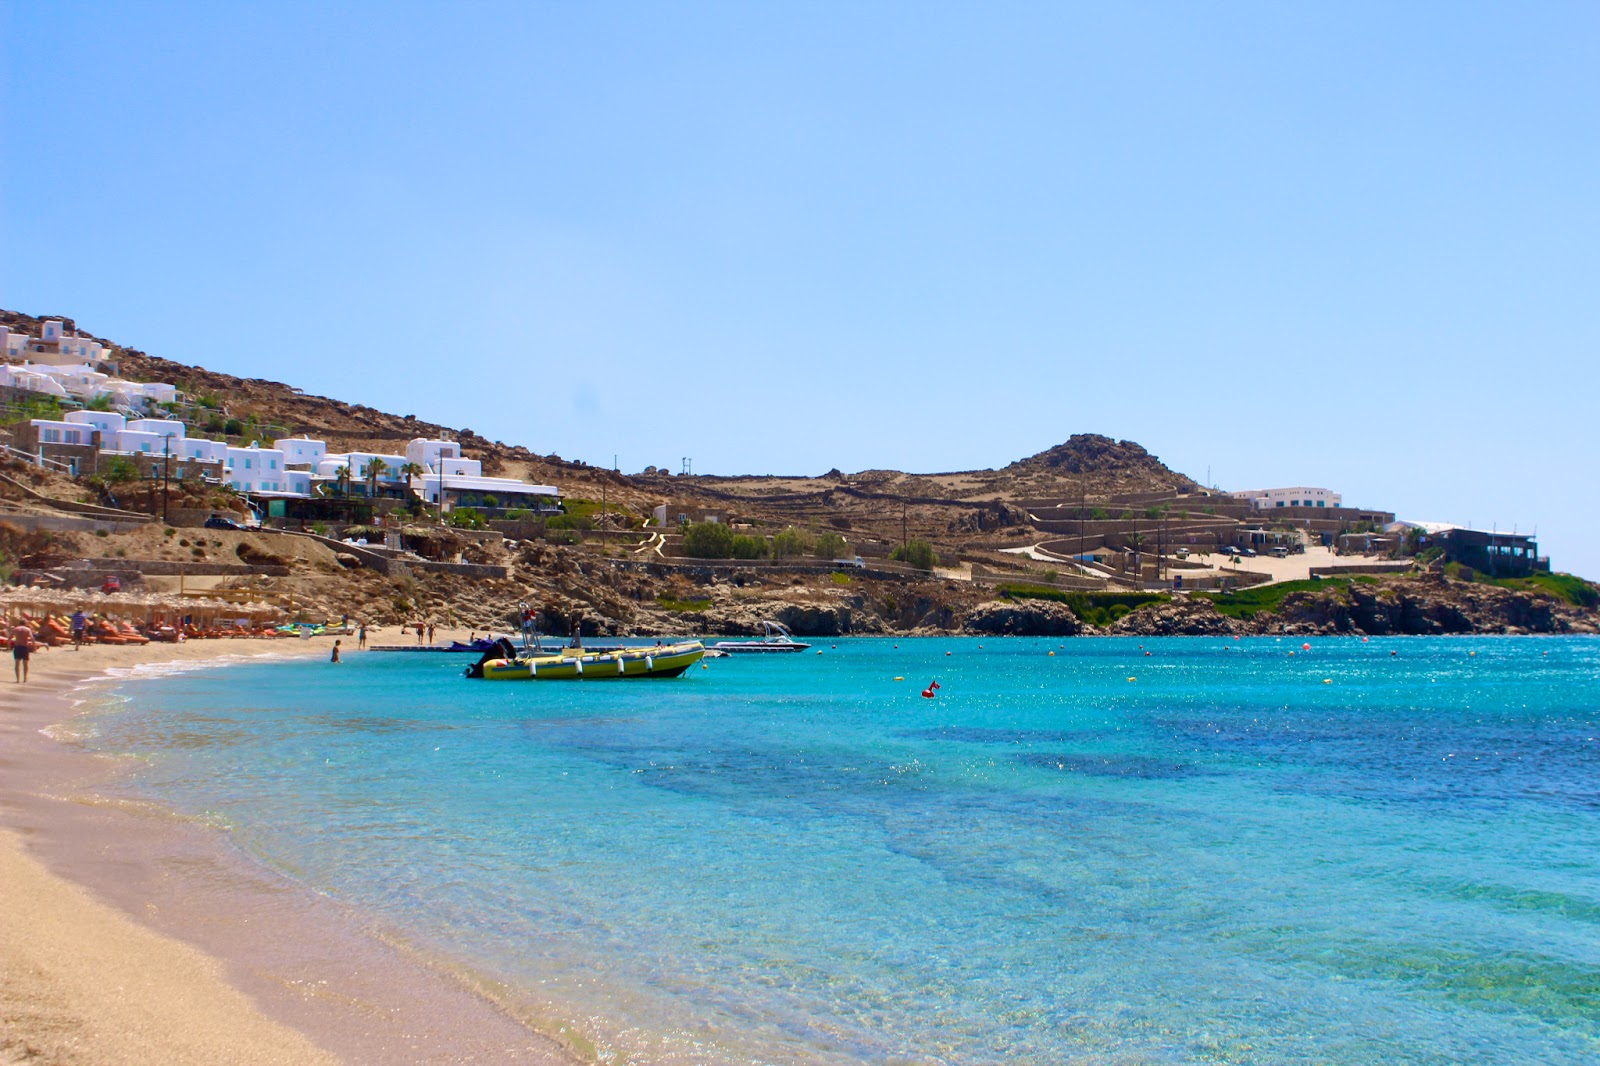 Best Island Beaches For Partying Mykonos St Barts: Nemo's Great Adventure: PSAROU BEACH & PARADISE BEACH